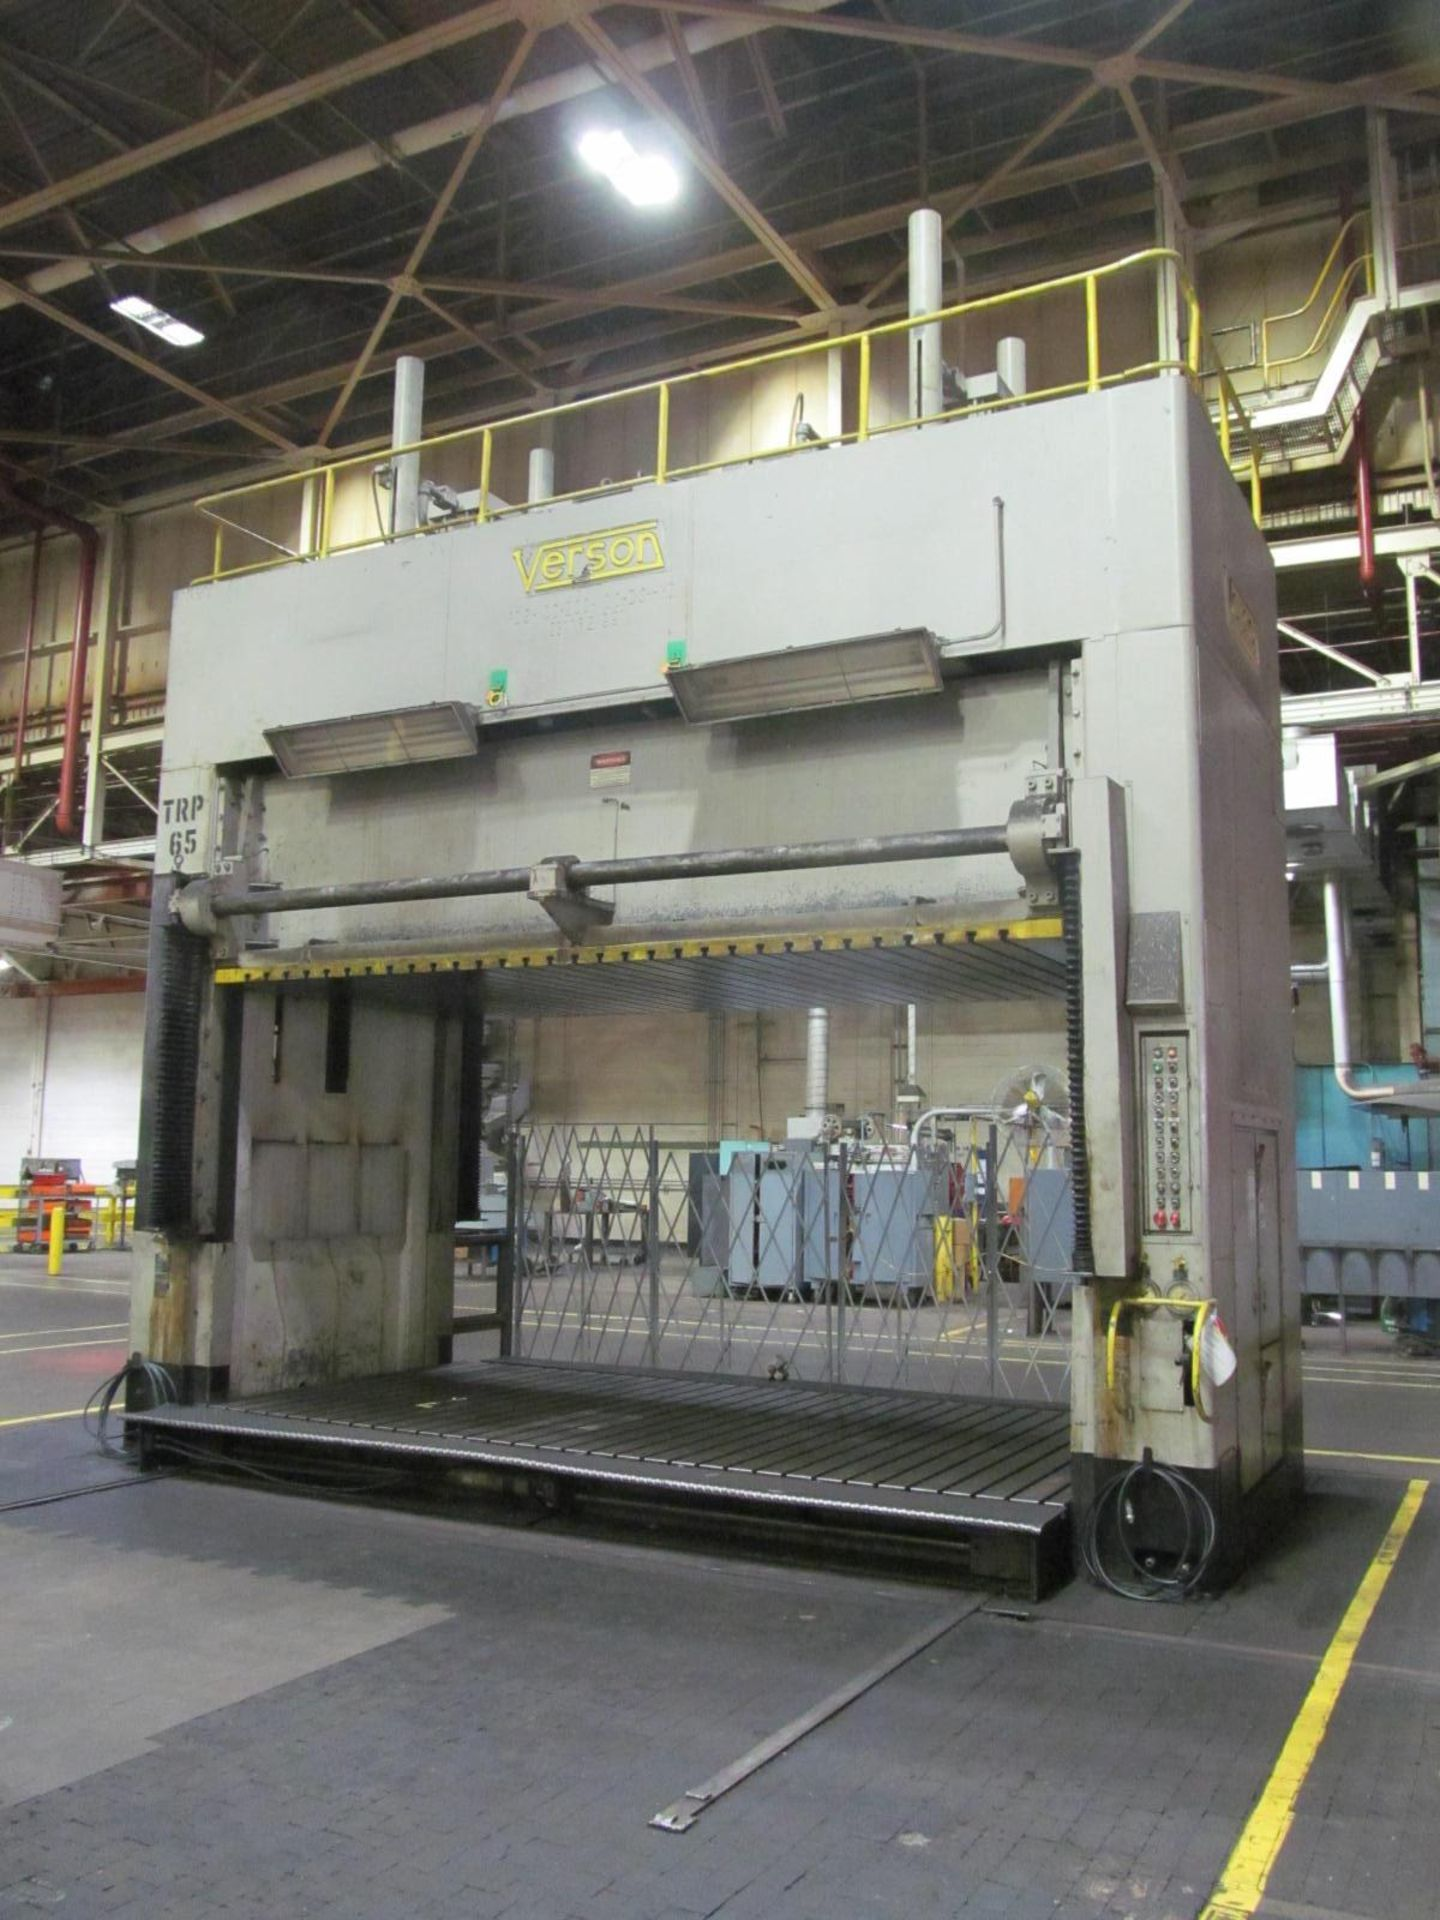 "Lot 19 - VERSON D2-100-200-100-DS HYDRAULIC SPOTTING PRESS S/N 21991, 100 TON CAPACITY, 200"" X 100"" BED,"